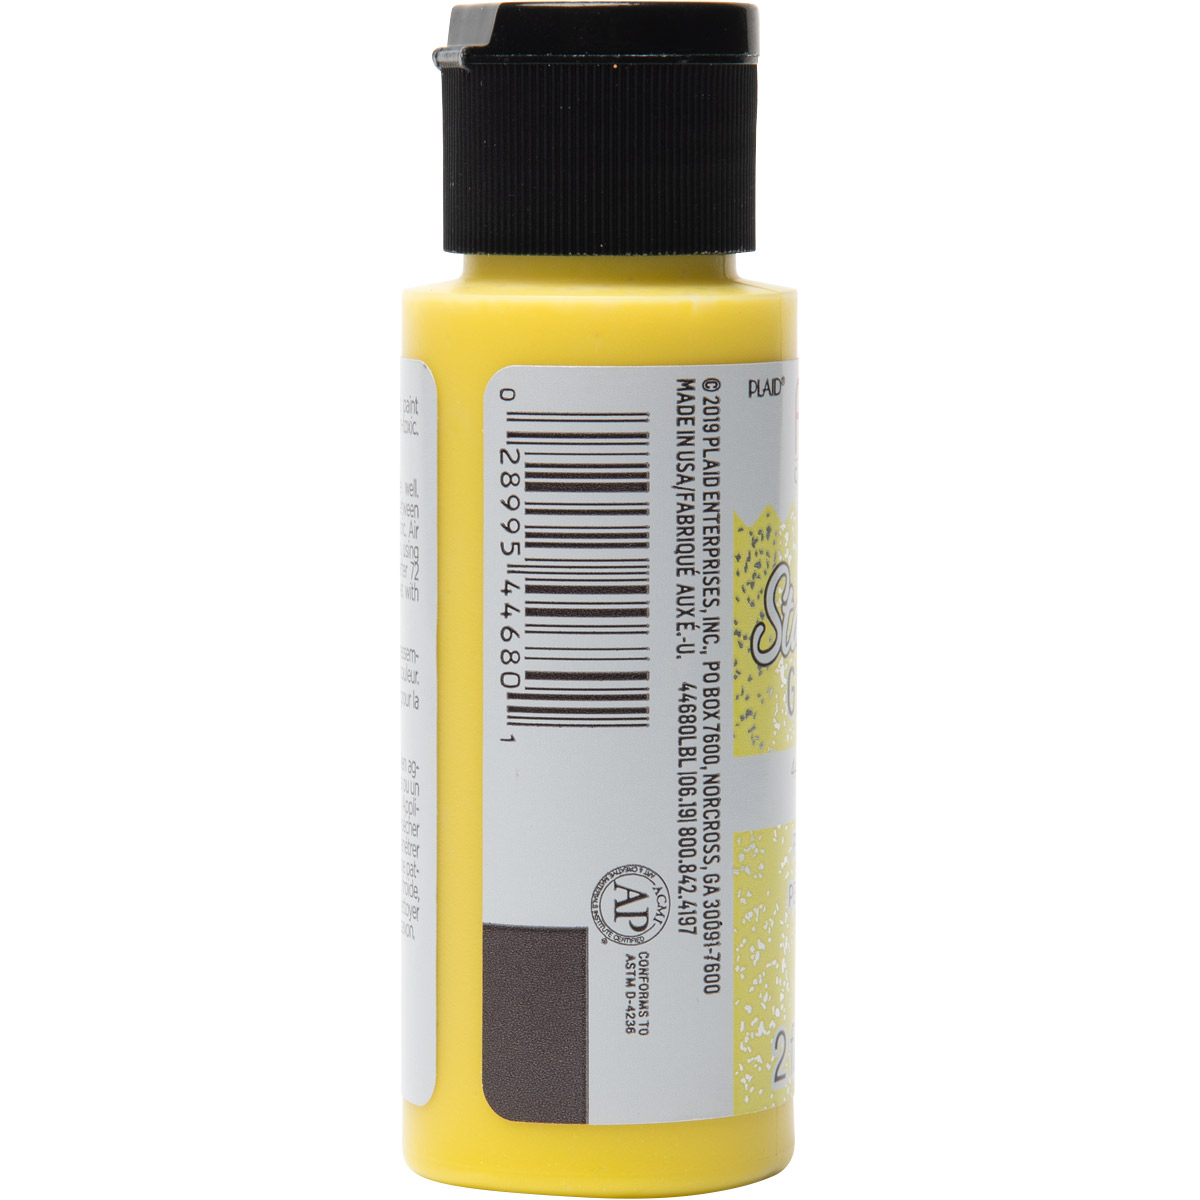 Fabric Creations™ StarStruck Glitter™ Fabric Paint - Lemon Ice, 2 oz. - 44680